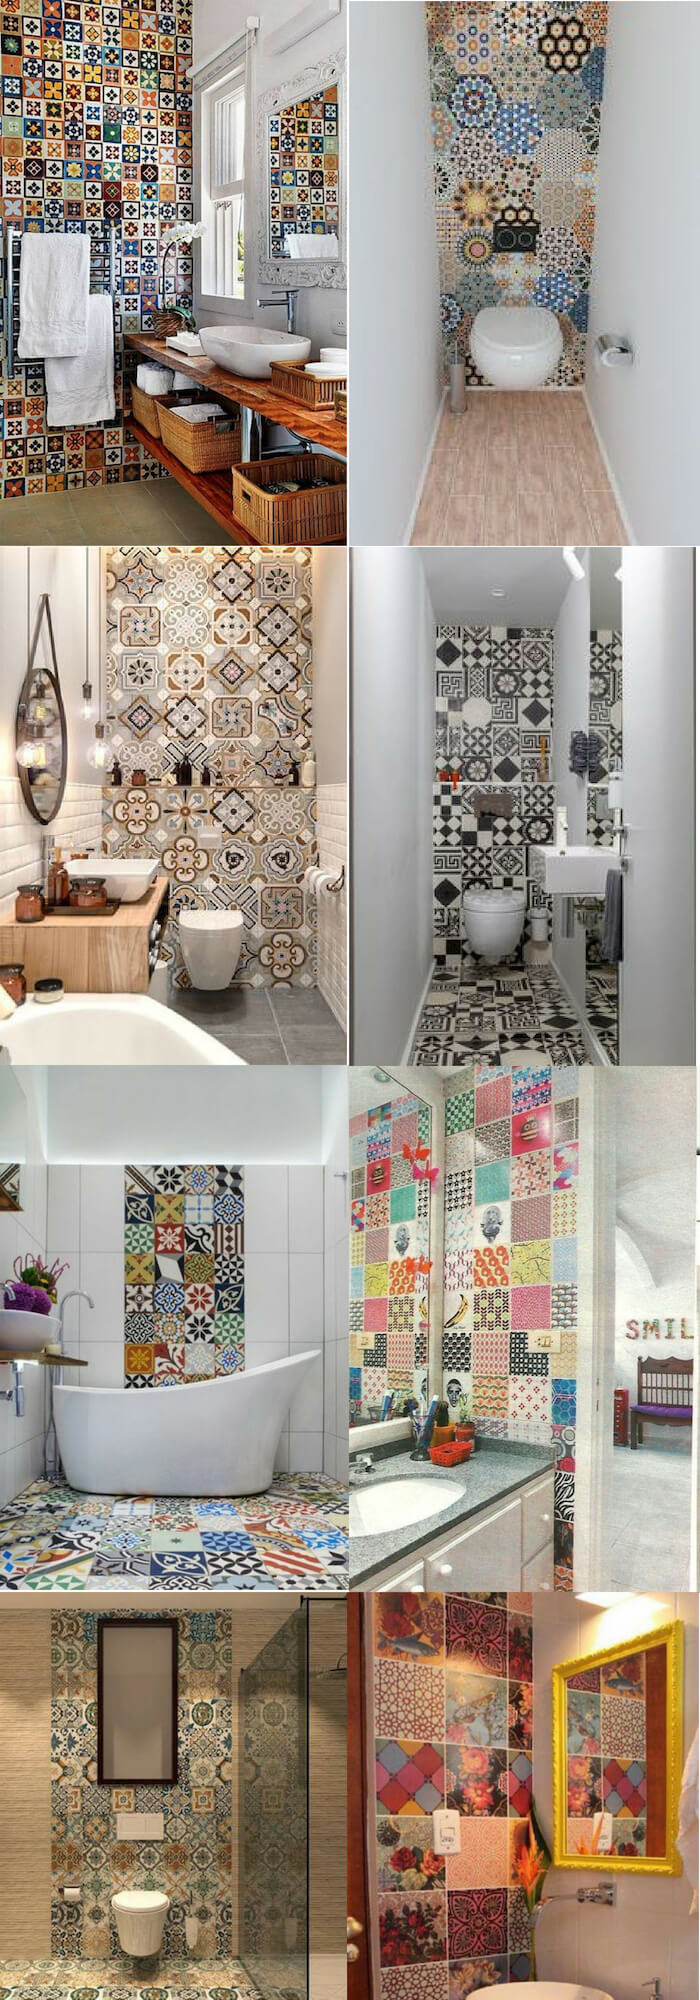 Vintage wall | Unique Wall Tile Ideas for Bathroom Design